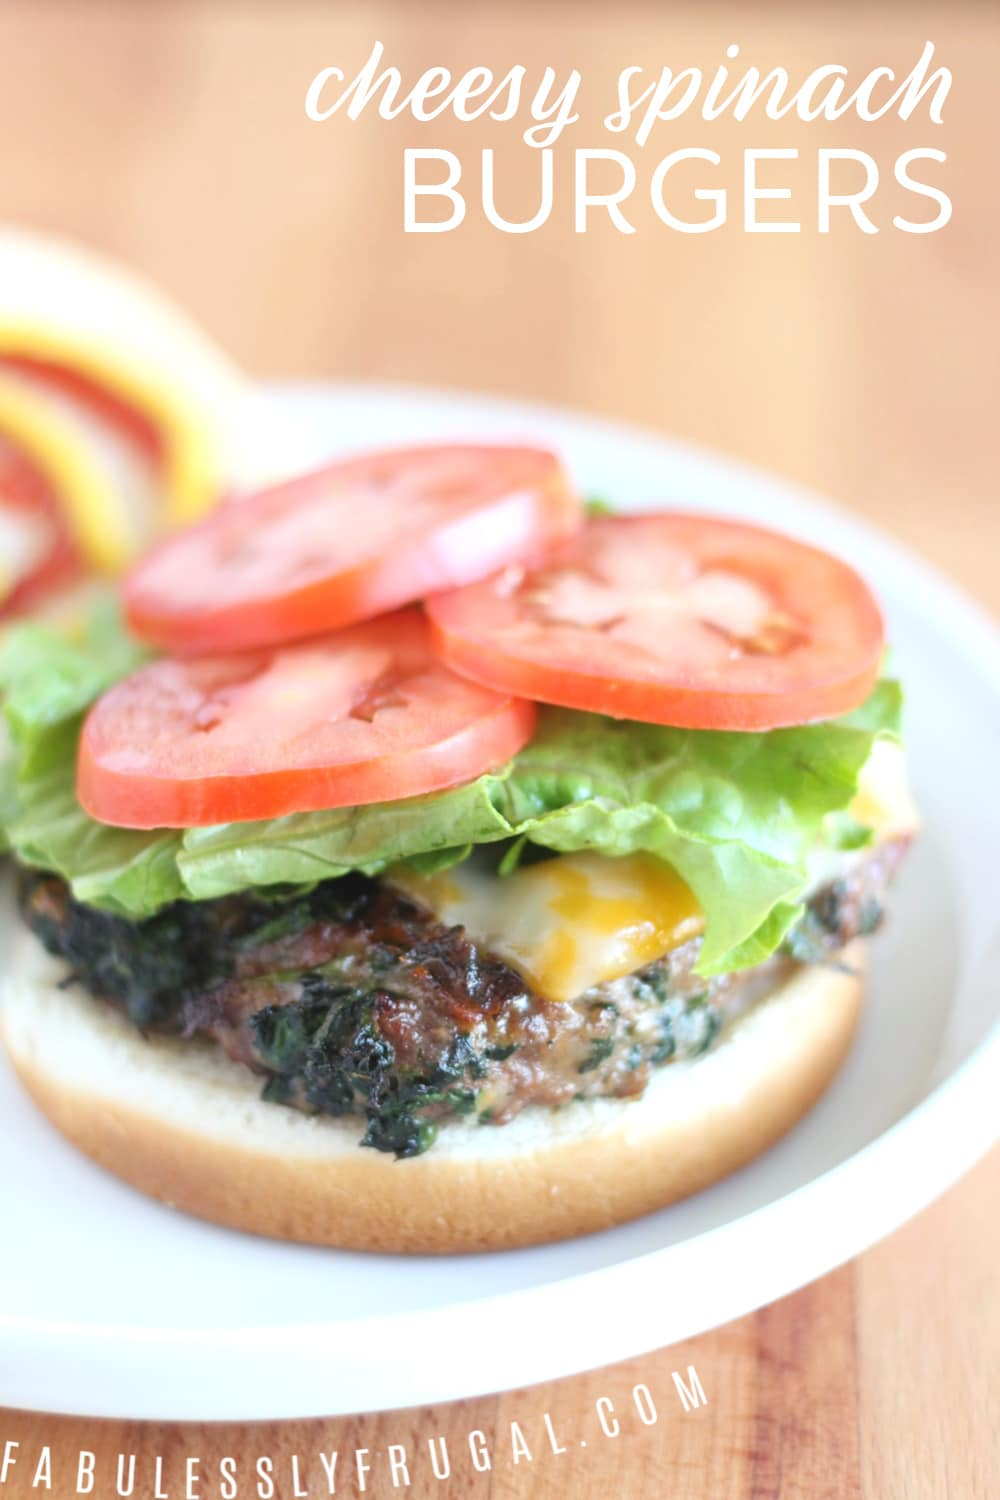 Easy cheesy spinach burgers